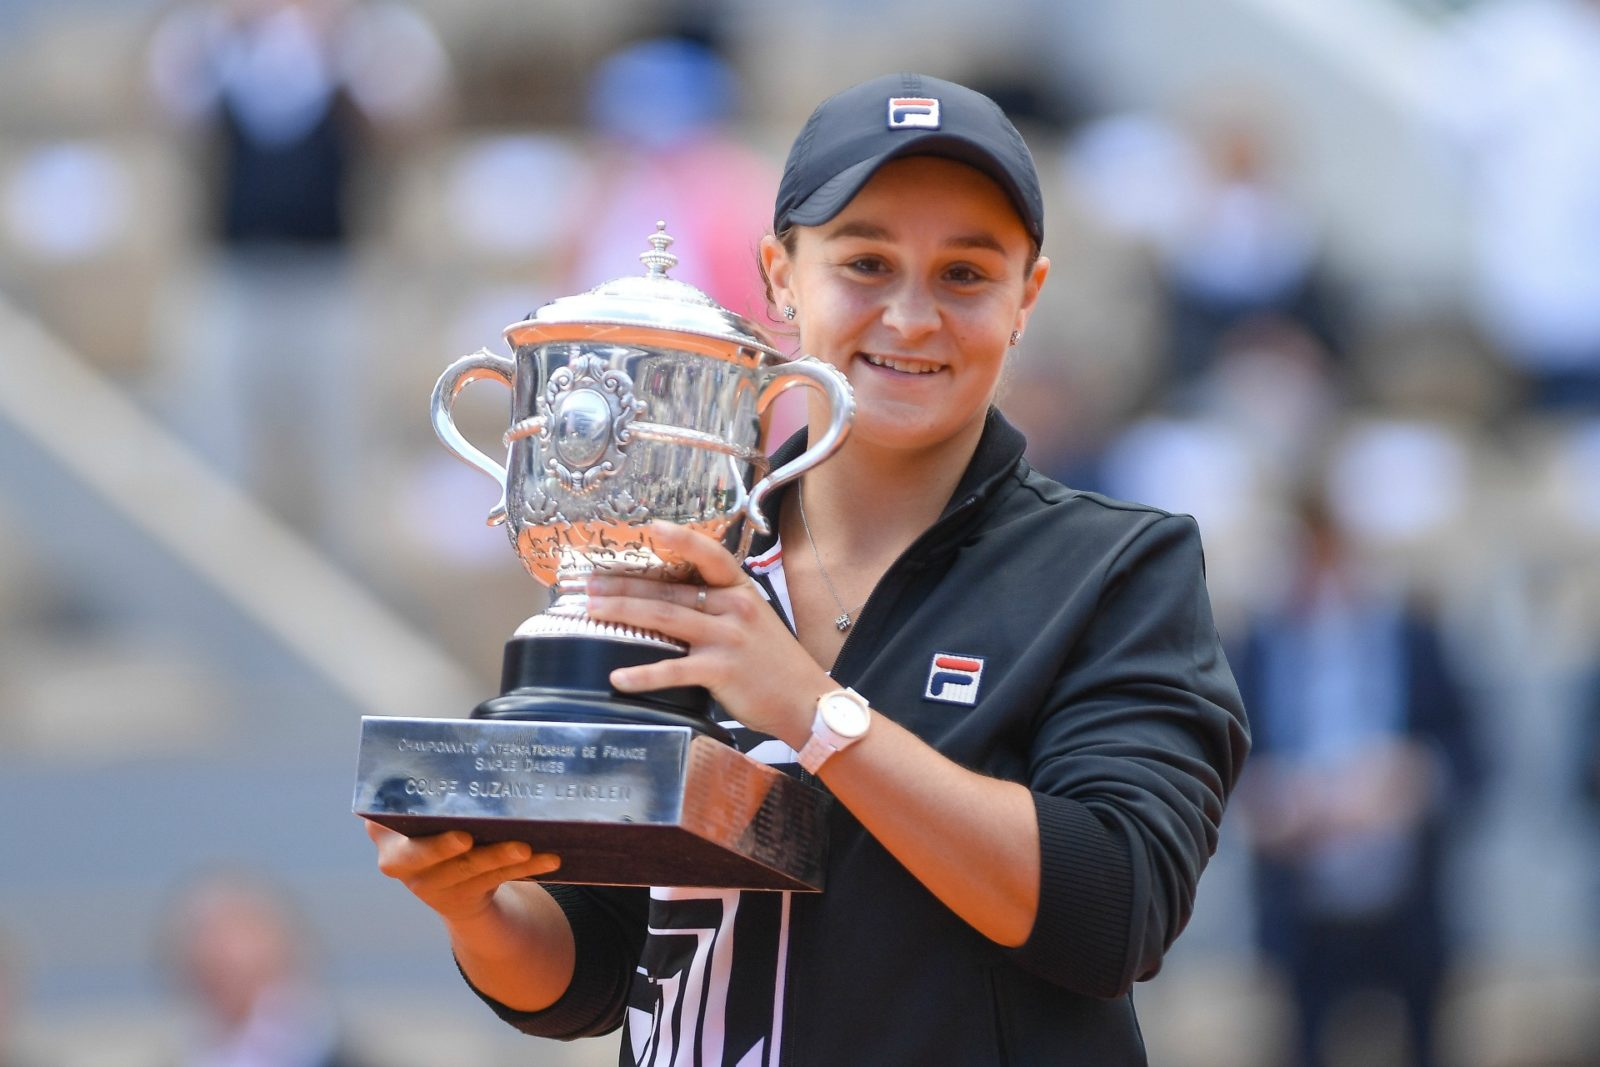 Ash Barty and her trophy after winning the French Open.